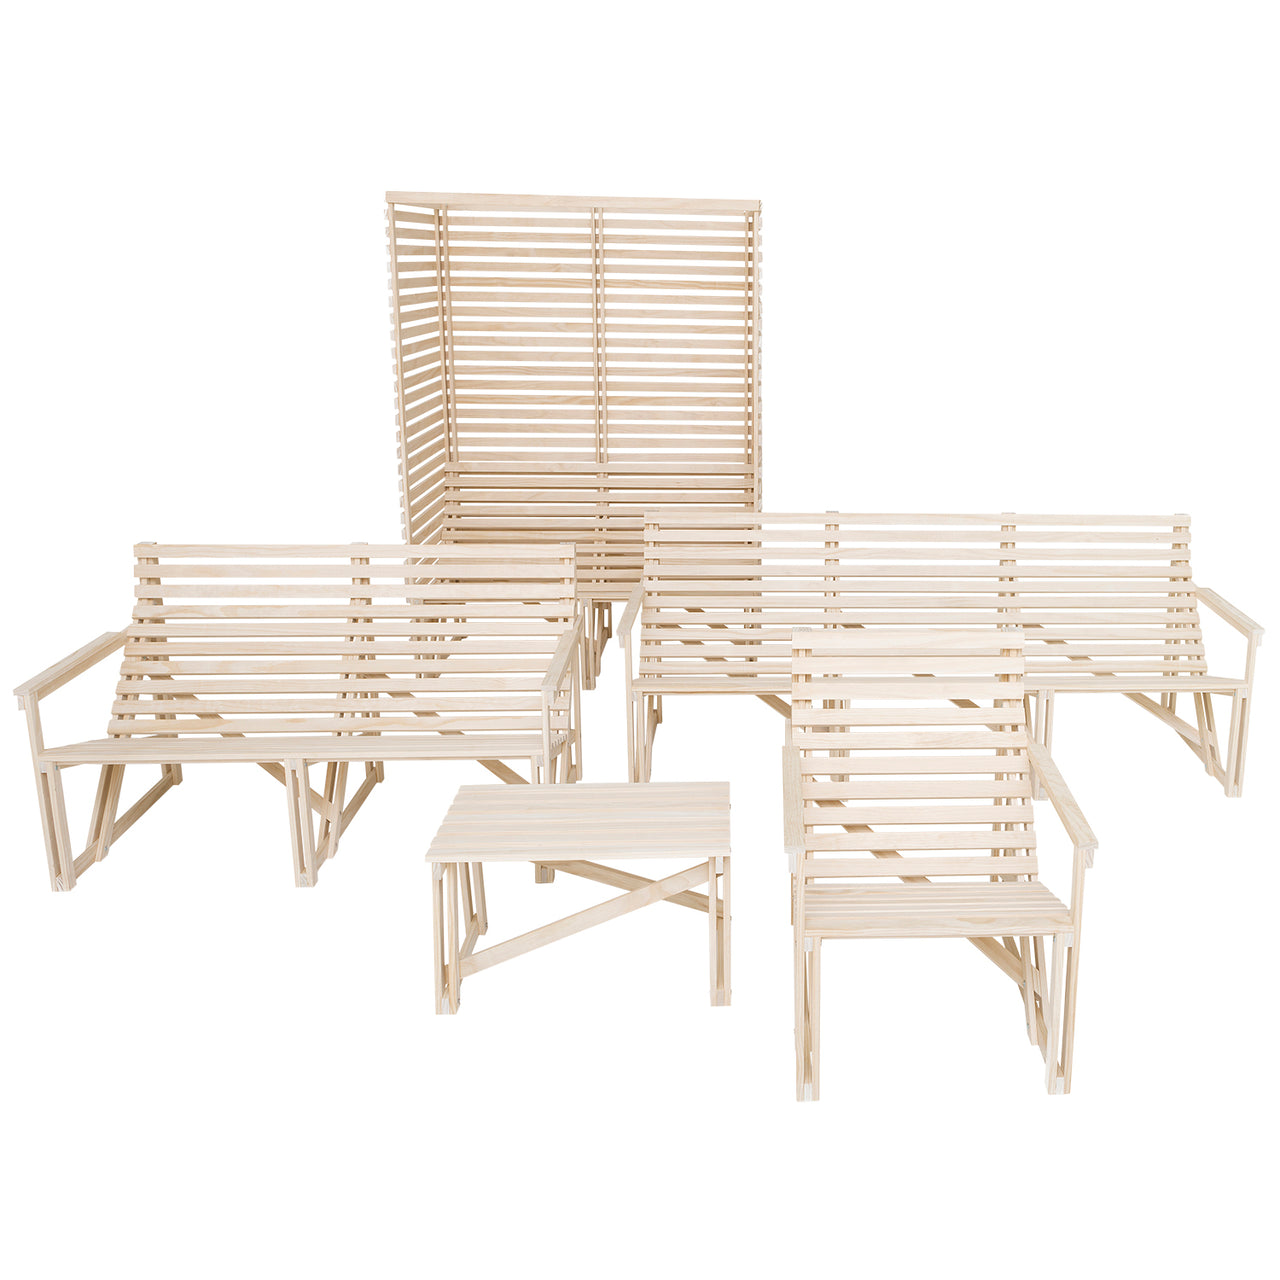 Patiobench 2-3 Seater